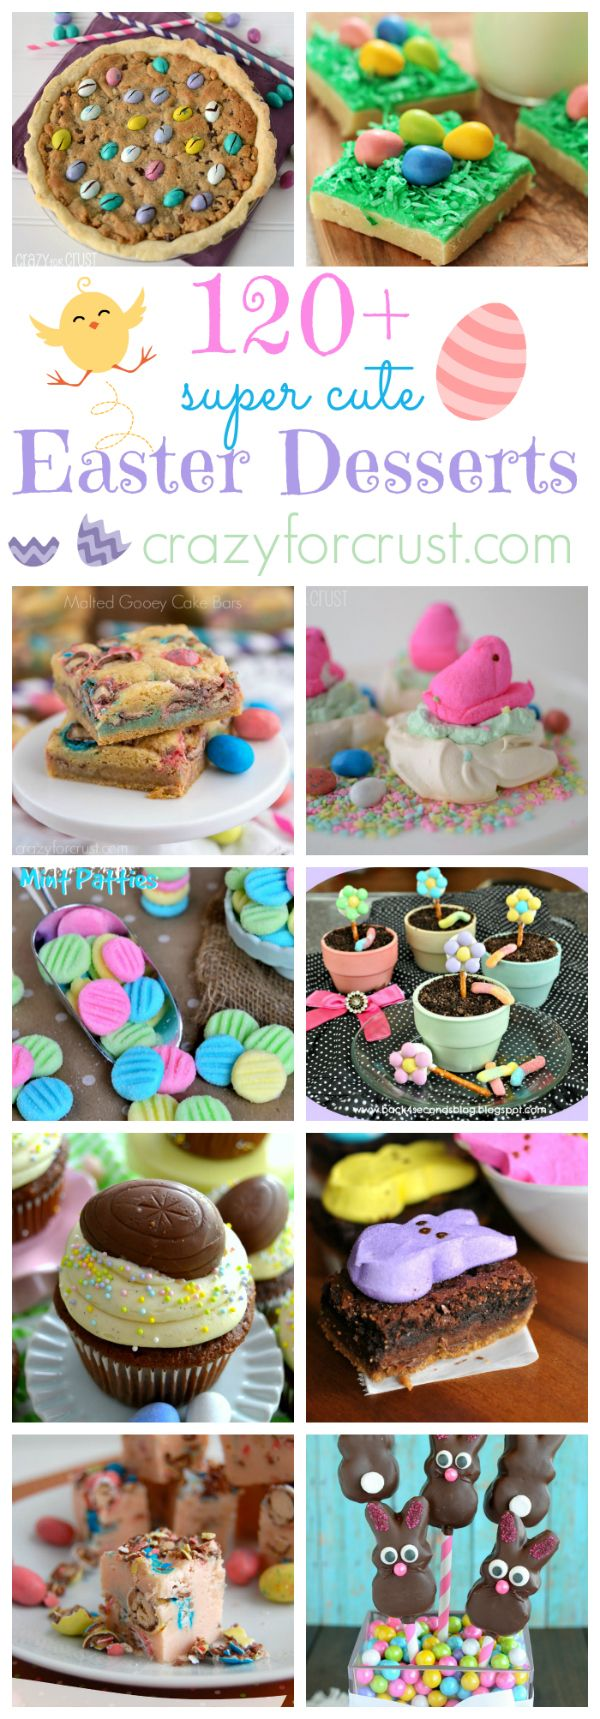 Over 120 Cute Easter Desserts